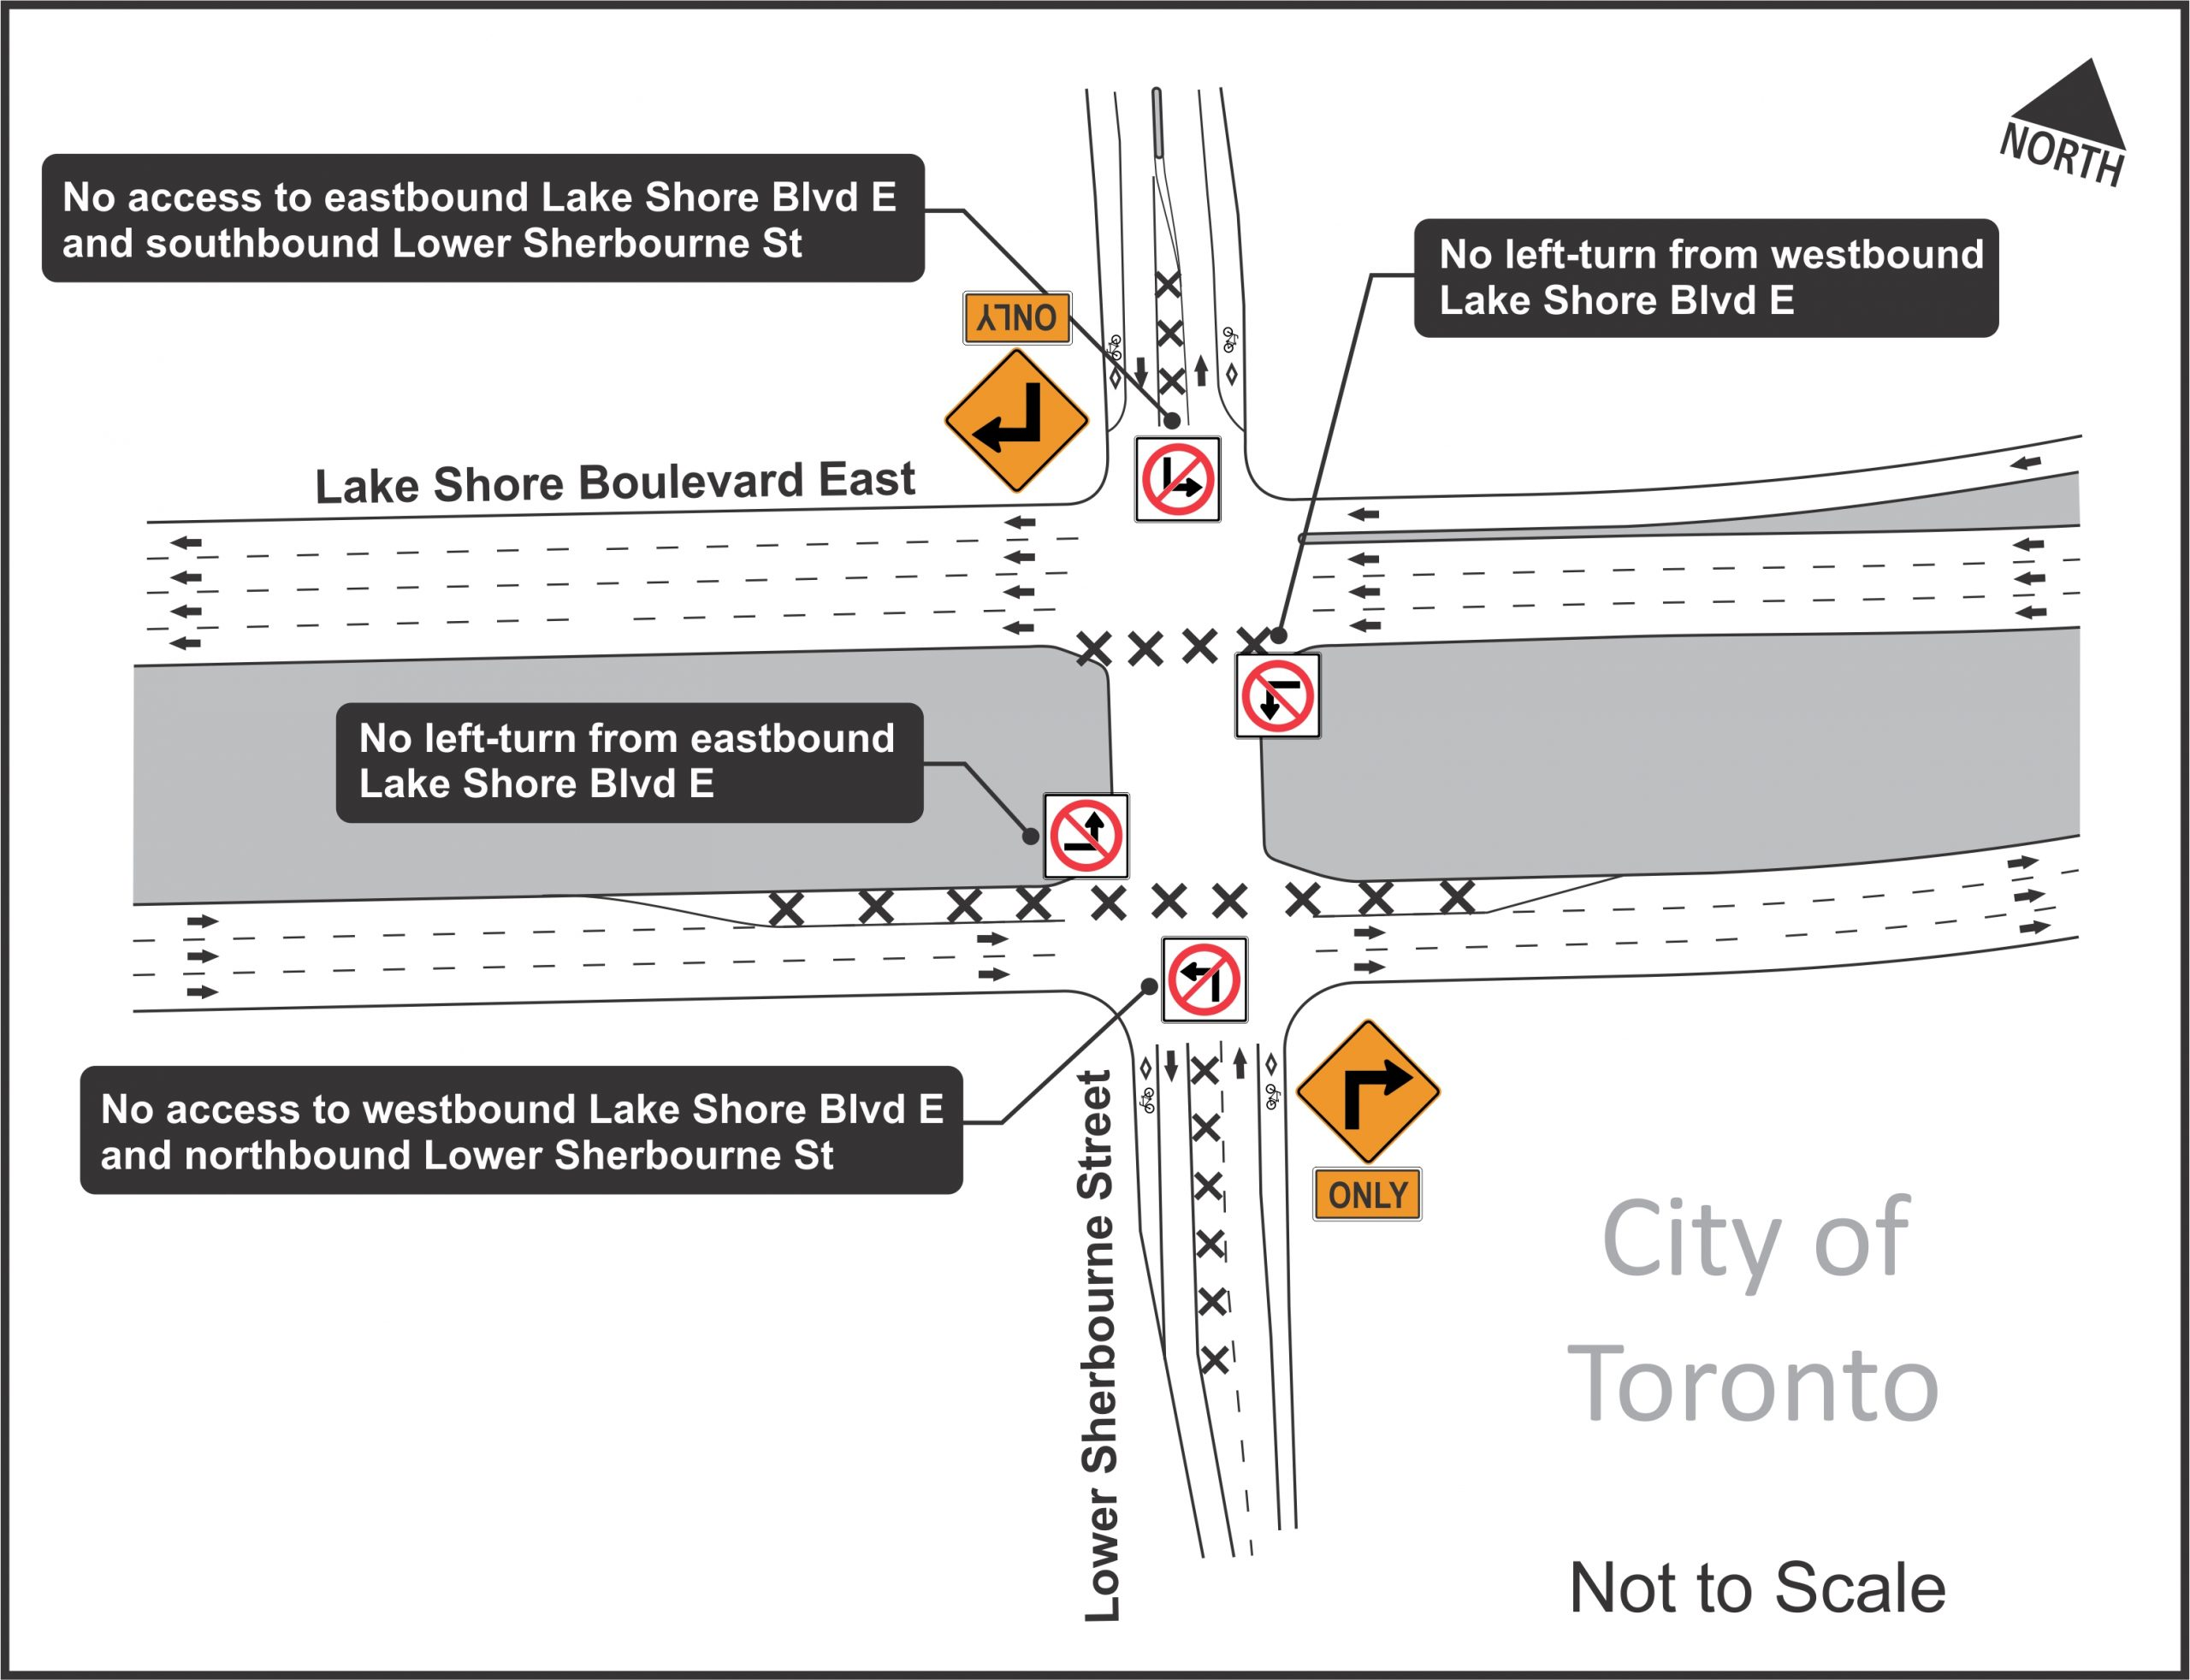 Image showing details of intersection closure at Lower Sherbourne Street and Lake Shore Boulevard East from June 20 to June 22, 2020